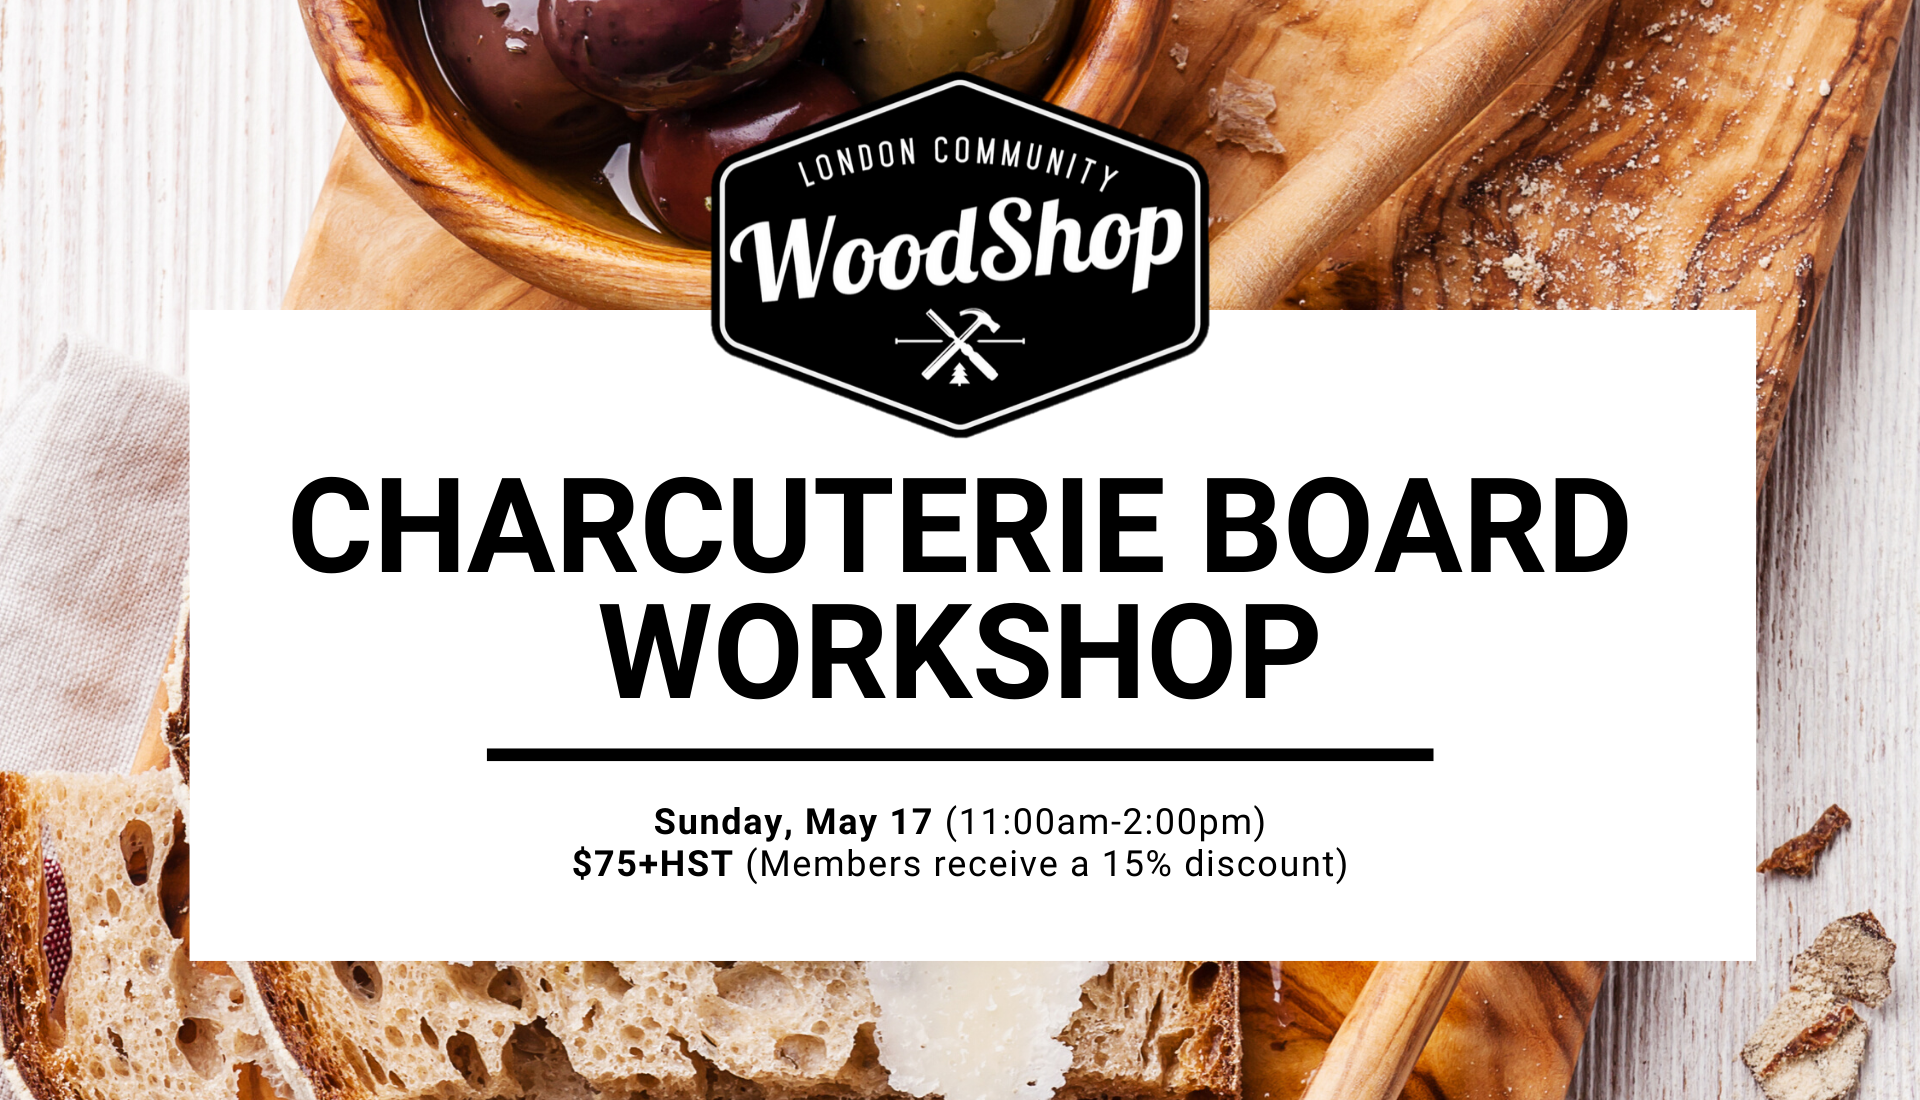 Sunday, May 17 11-2pm Charcuterie Board Workshop